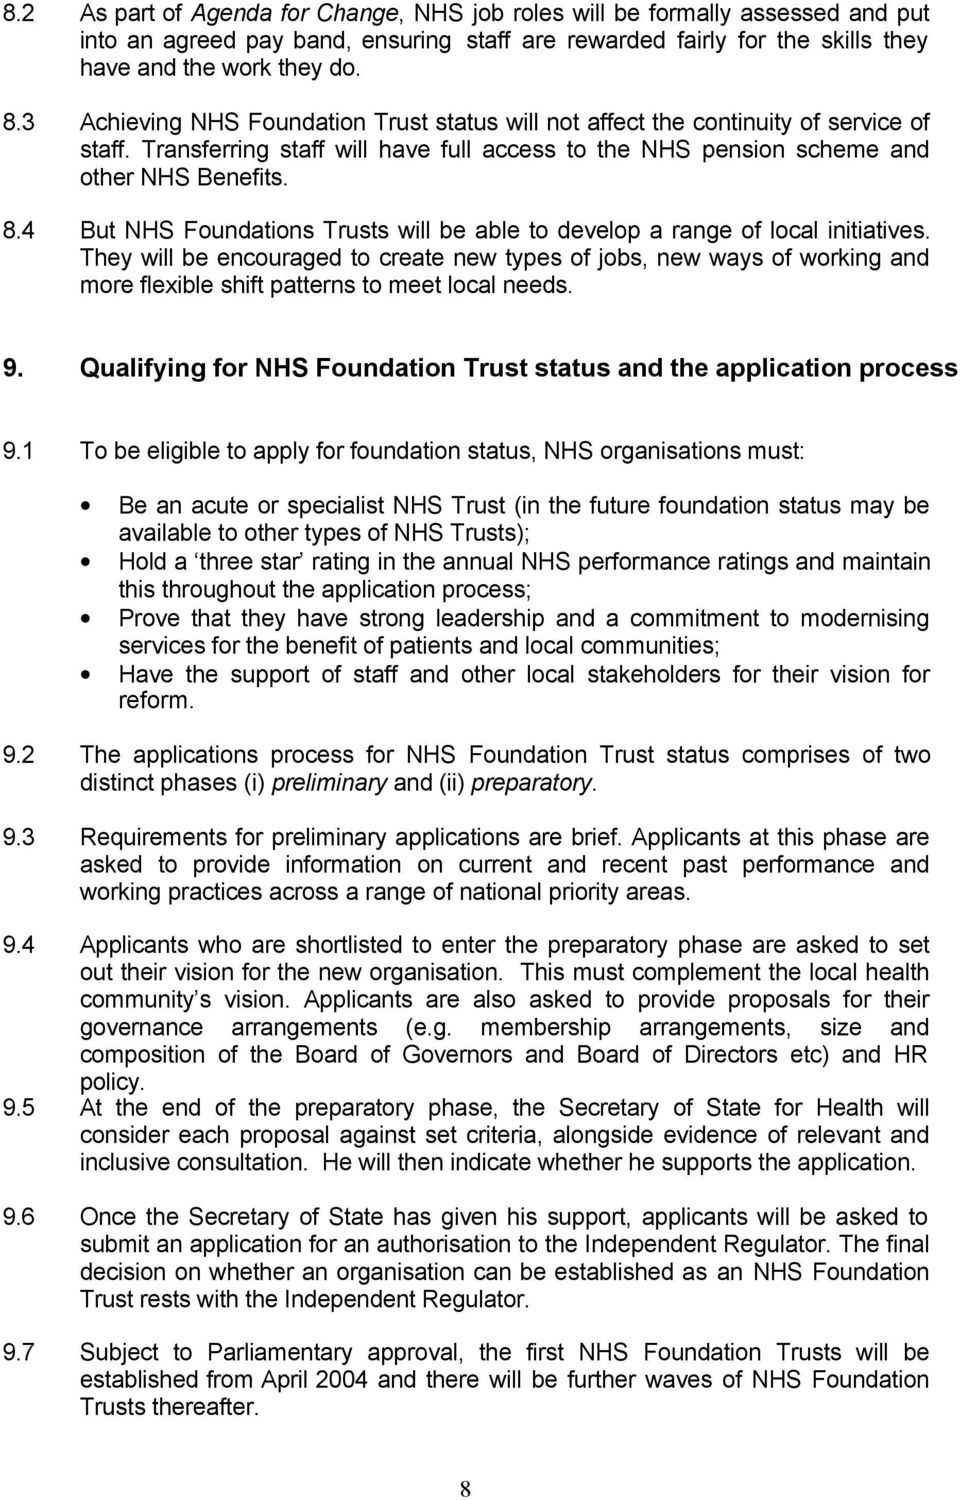 4 But NHS Foundations Trusts will be able to develop a range of local initiatives.